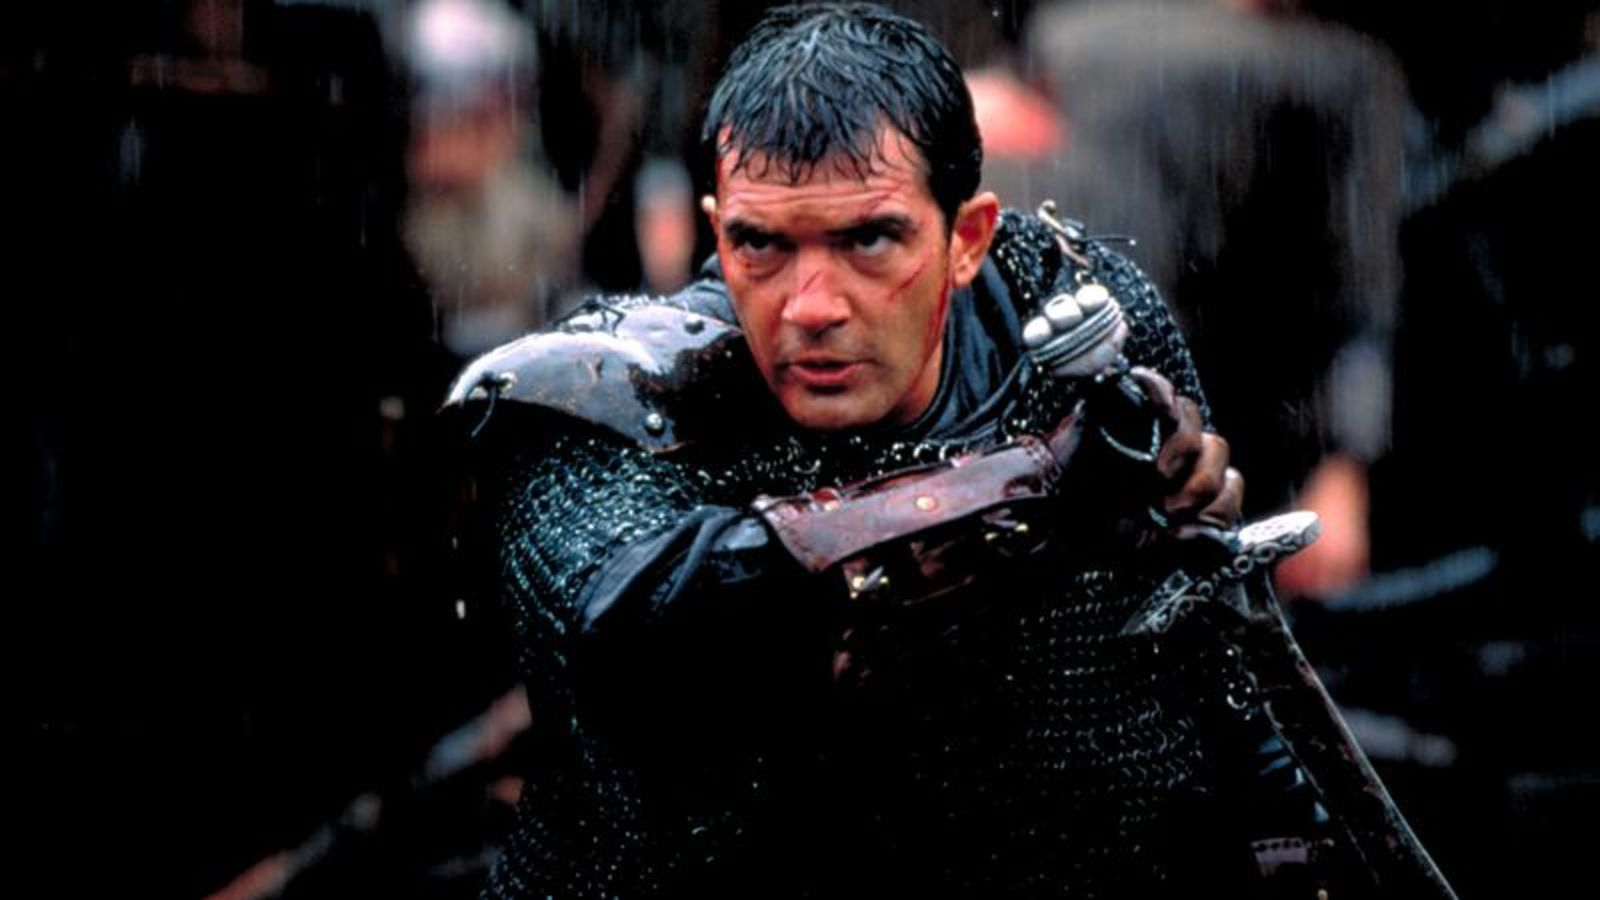 Antonio Banderas as Ahmed Ibn Fahdlan in The 13th Warrior (1999)